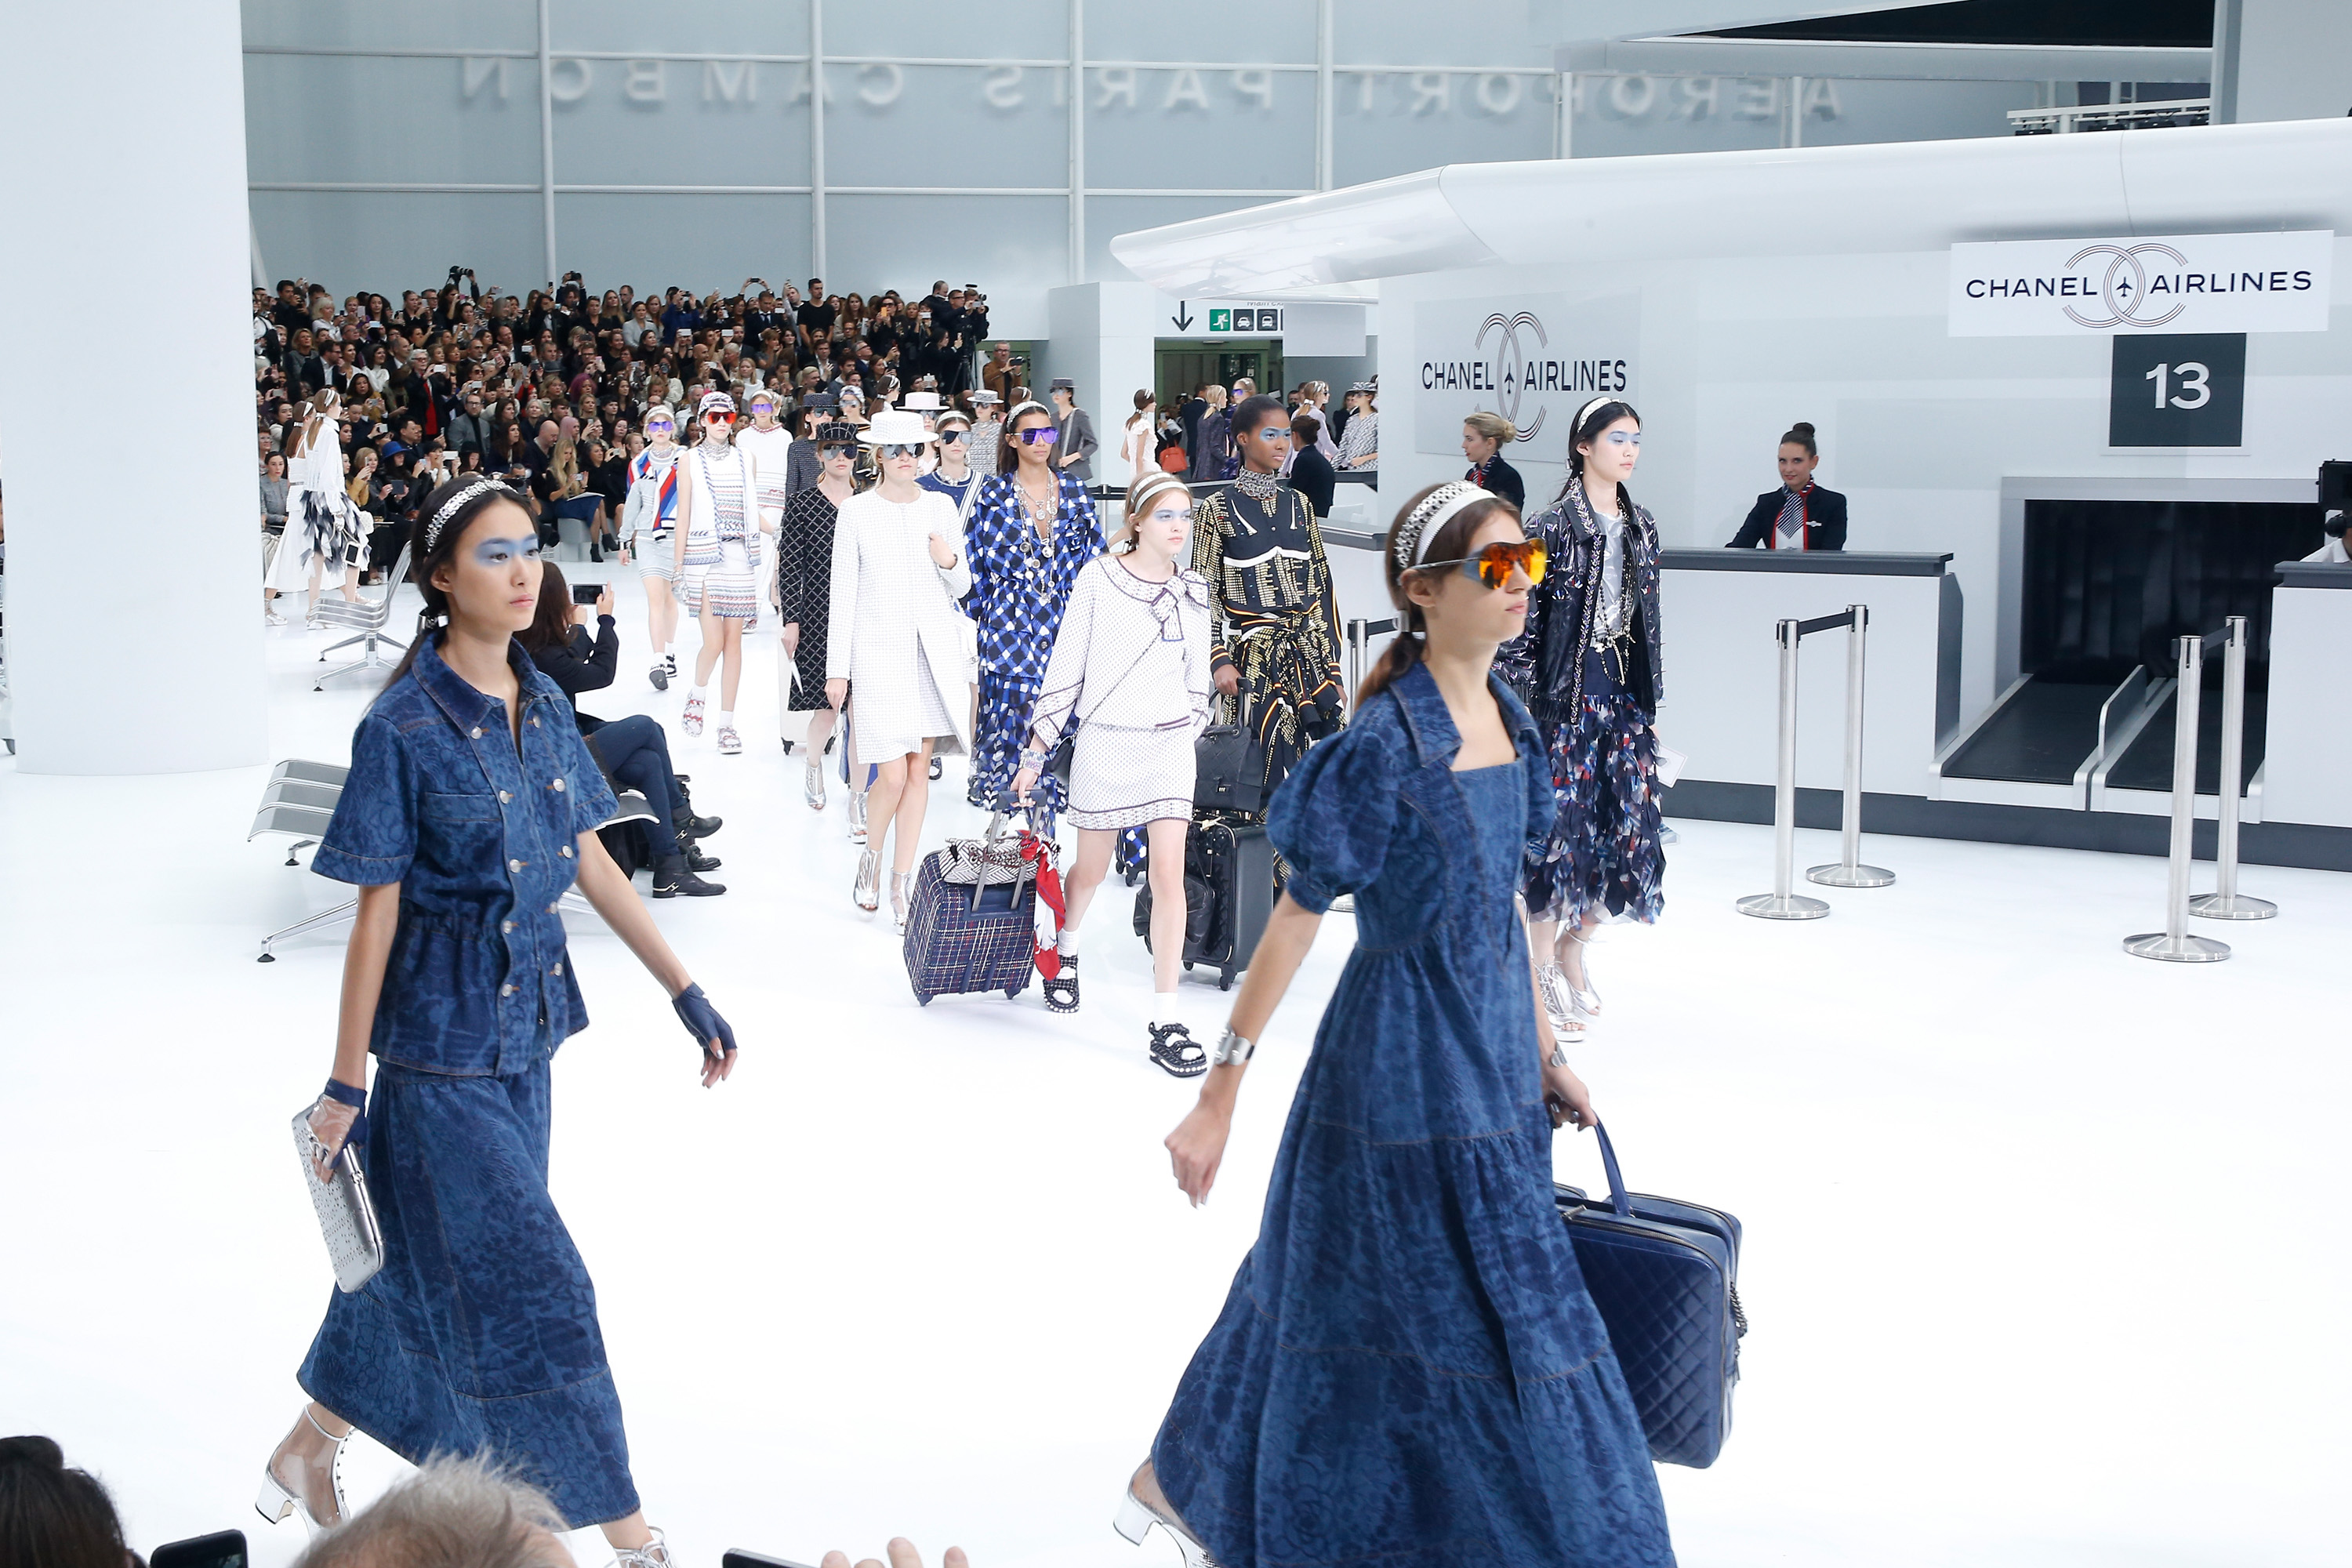 Karl Lagerfeld Gives Us Chanel Airlines', Creating An Actual Airport For His SS16 Show